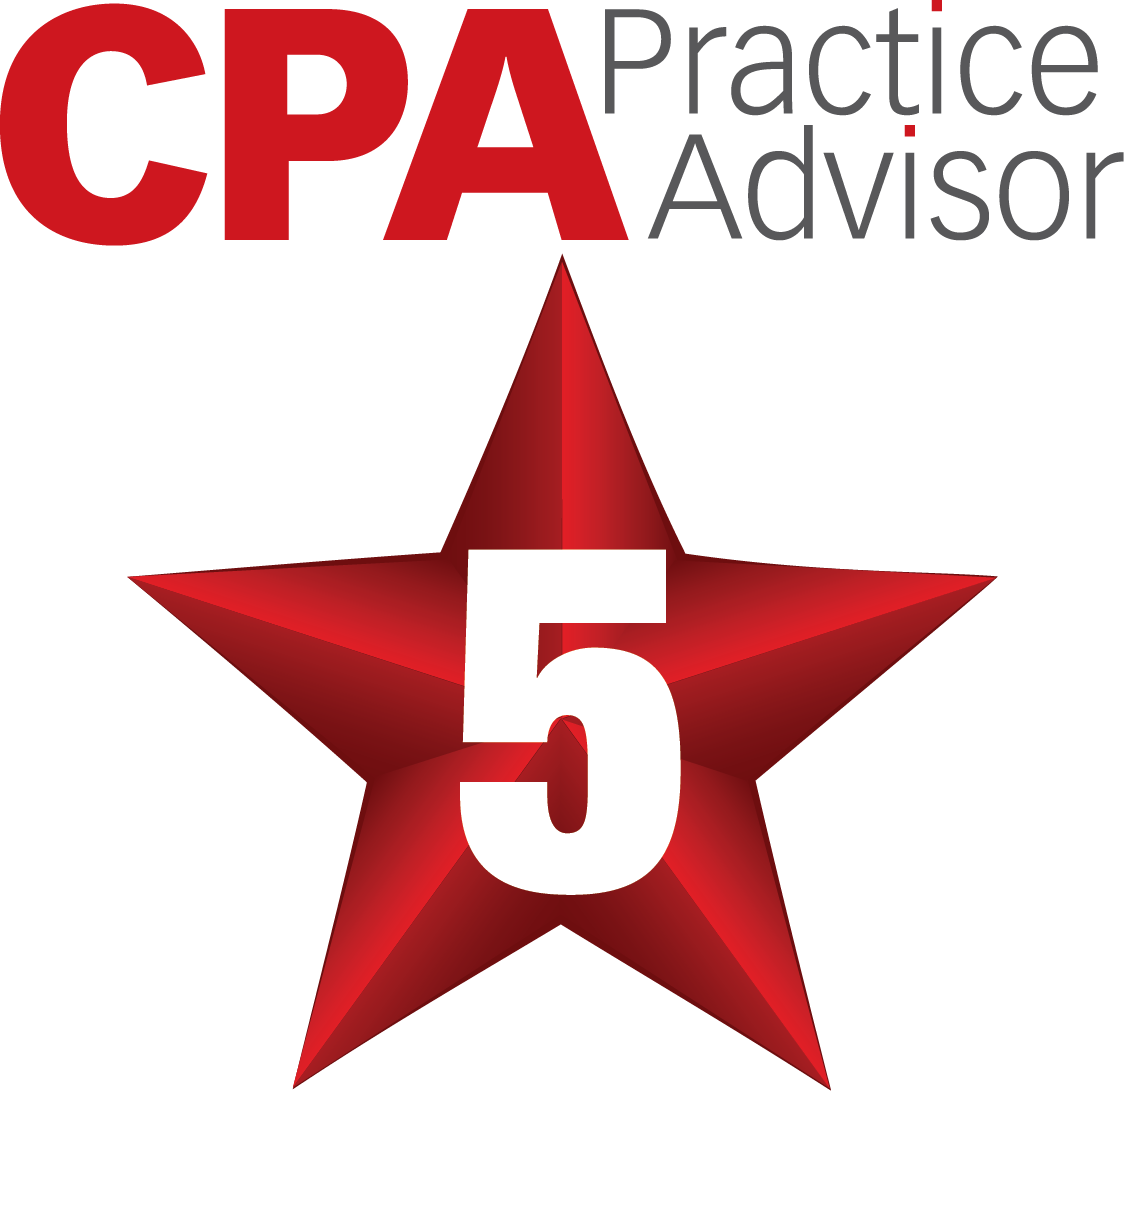 2018 CPA Practice Advisor 5 star rating